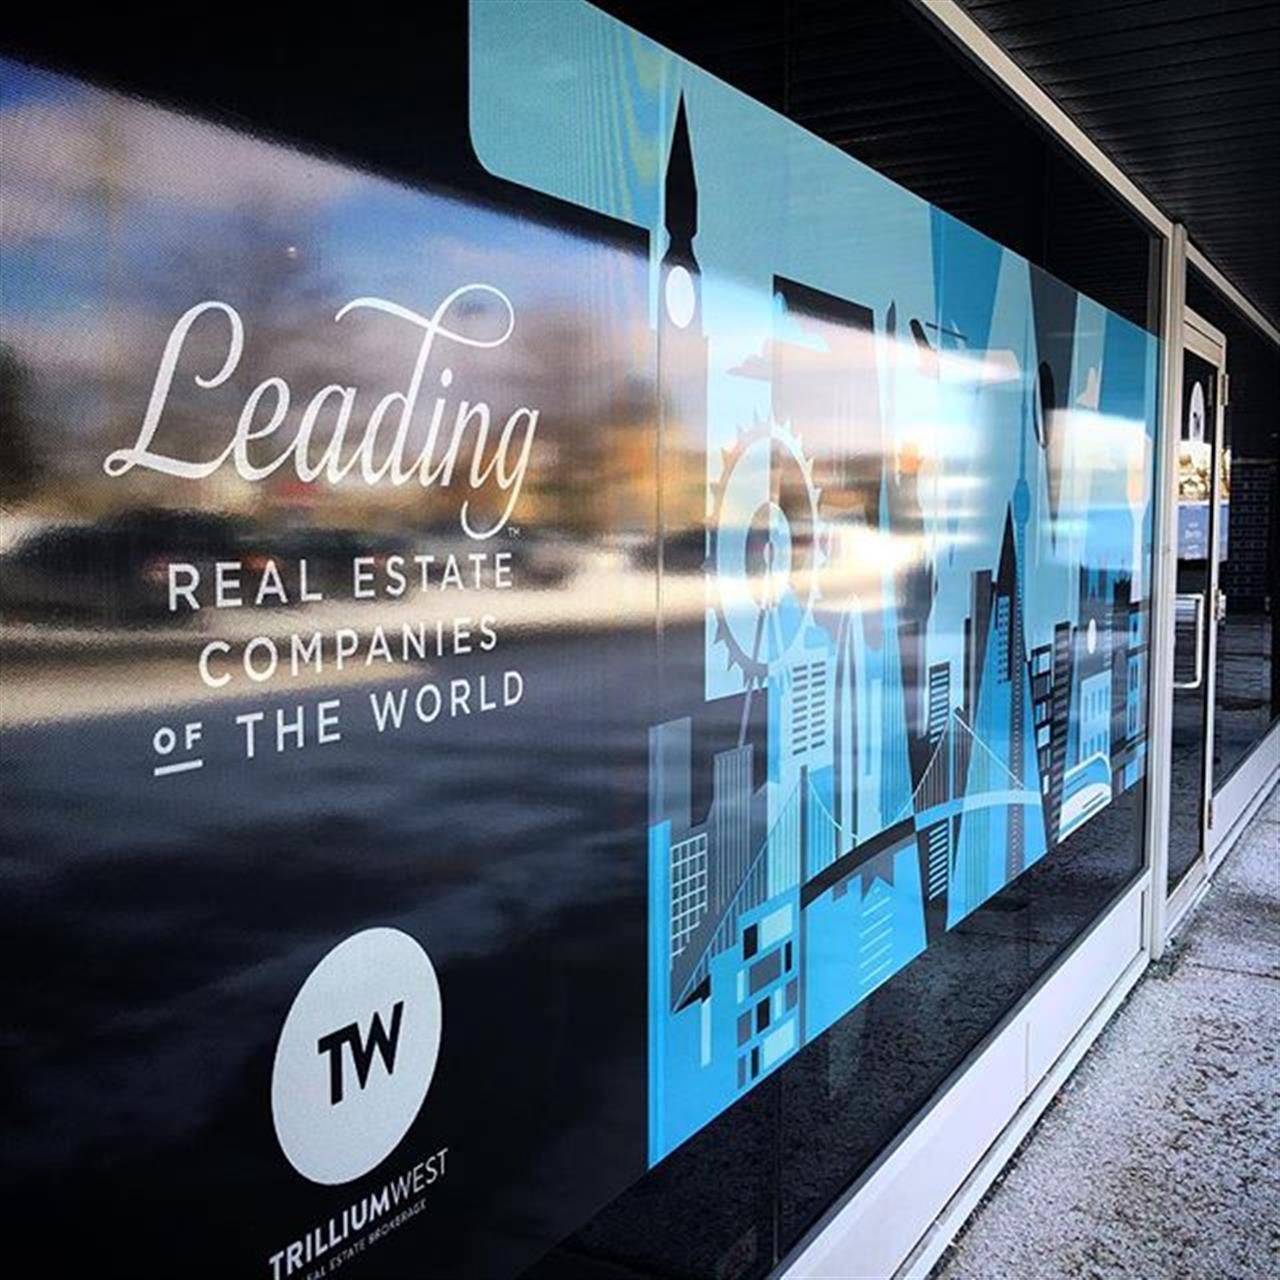 Connecting Guelph, globally  TrilliumWest is proud to be part of the Leading Real Estate Companies of the World  - - - - #realestate #realtor #guelph #seeninguelph #trilliumwest #leadingre #leadingrelocal #blue #art #window #windowart #cityscape #global #lovewhereyoulive #digitalart